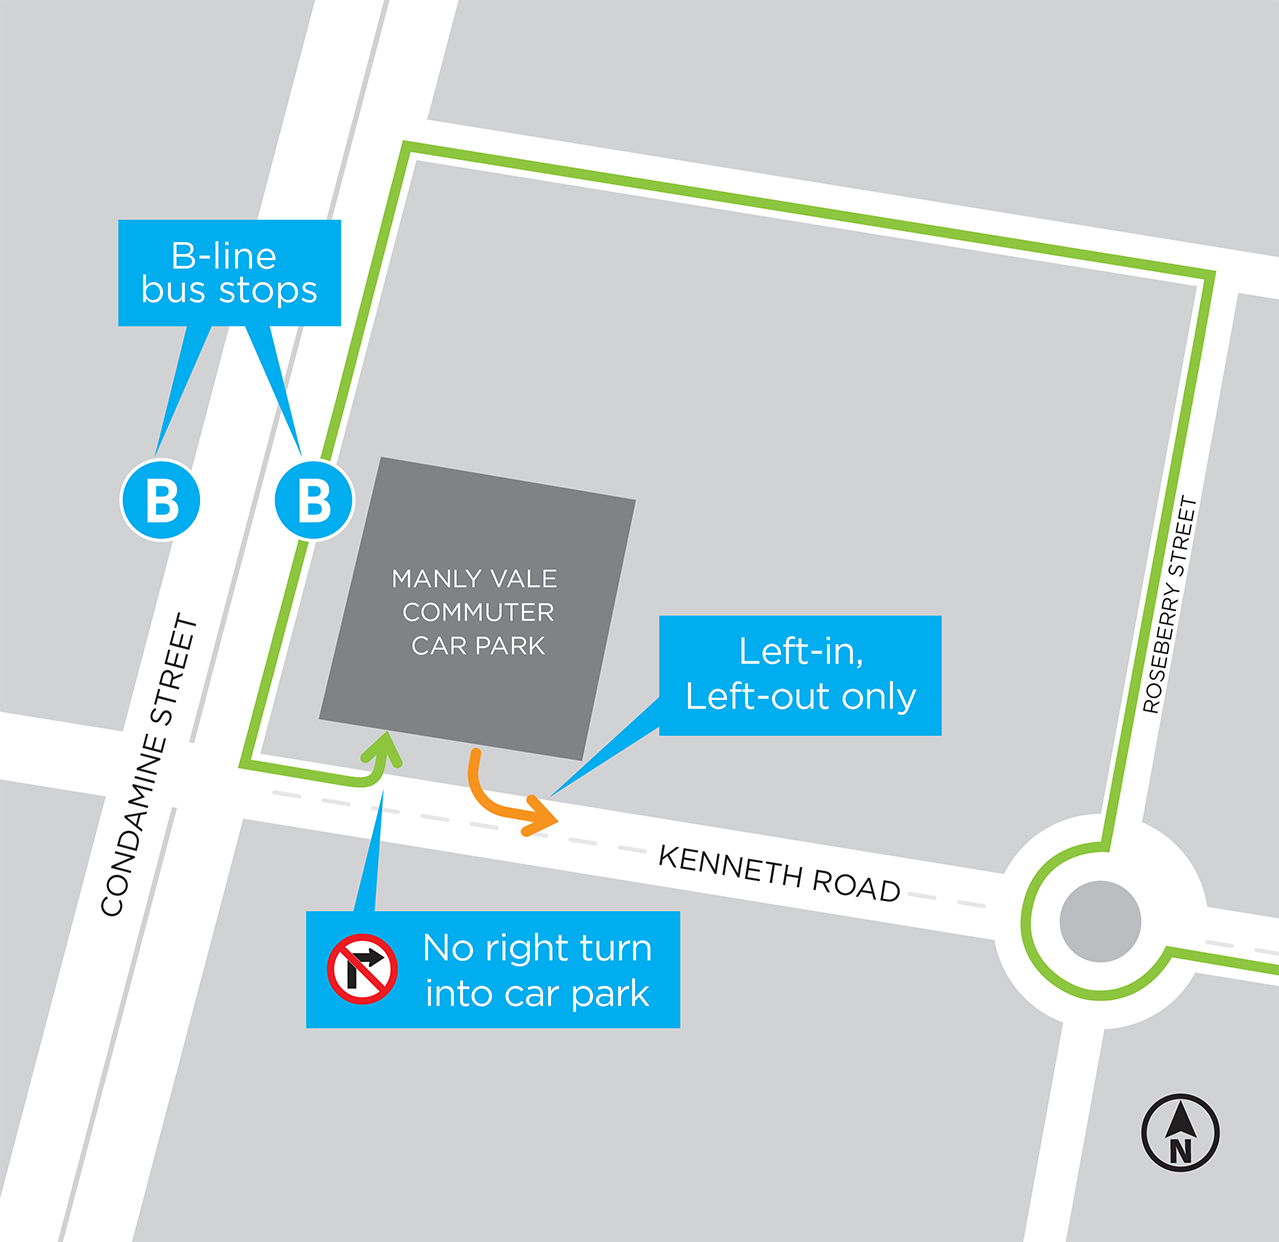 Location and Access for Manly Vale Car Park